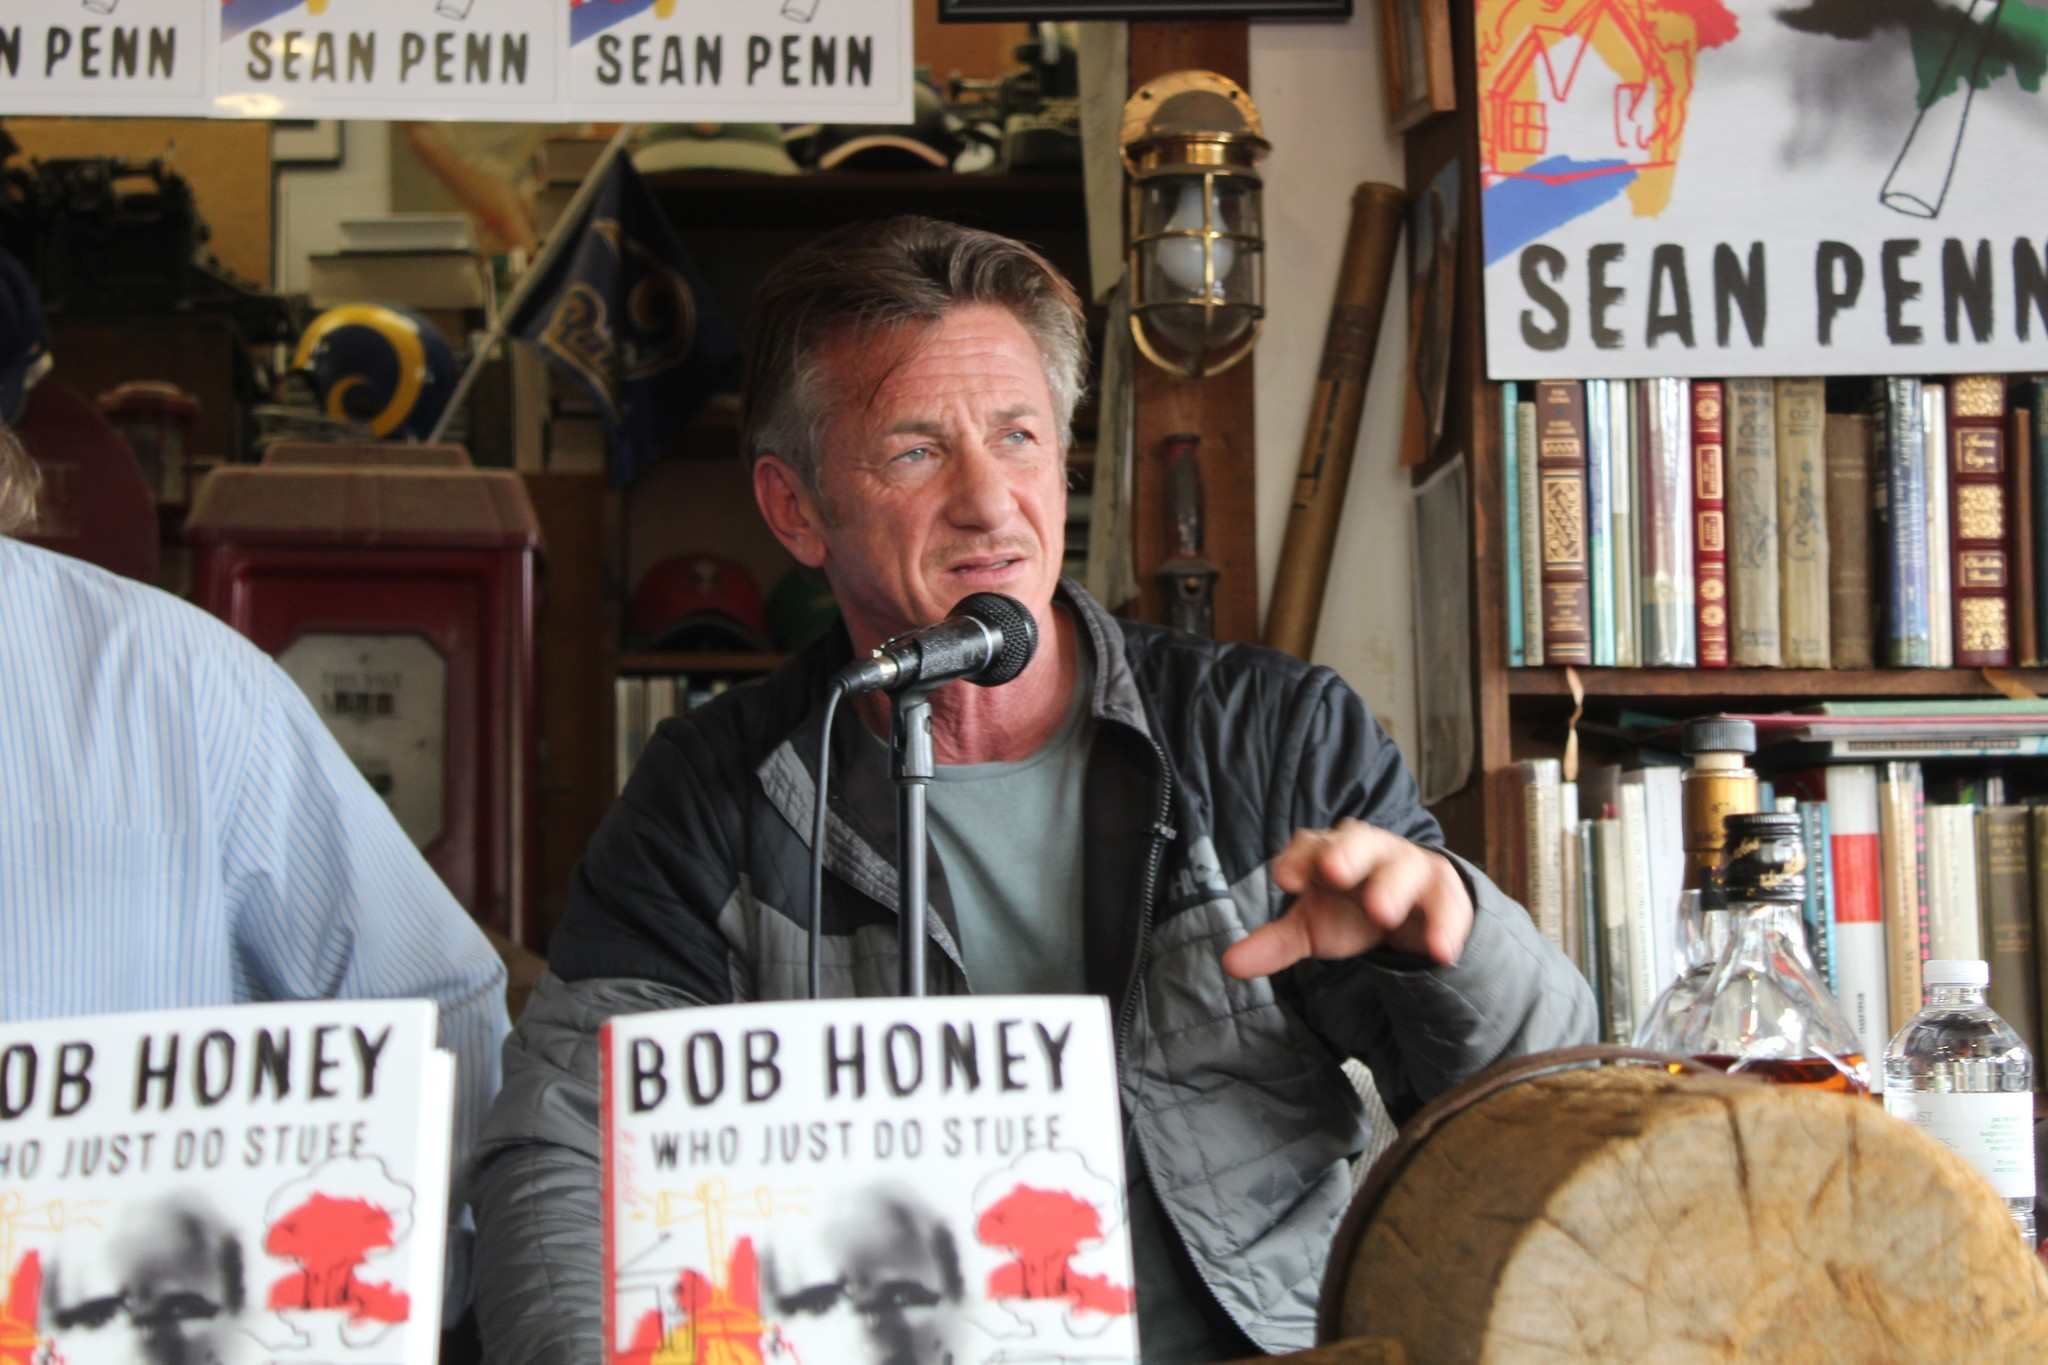 Actor Sean Penn visits La Jolla to read from his debut novel at D.G. Wills bookstore.